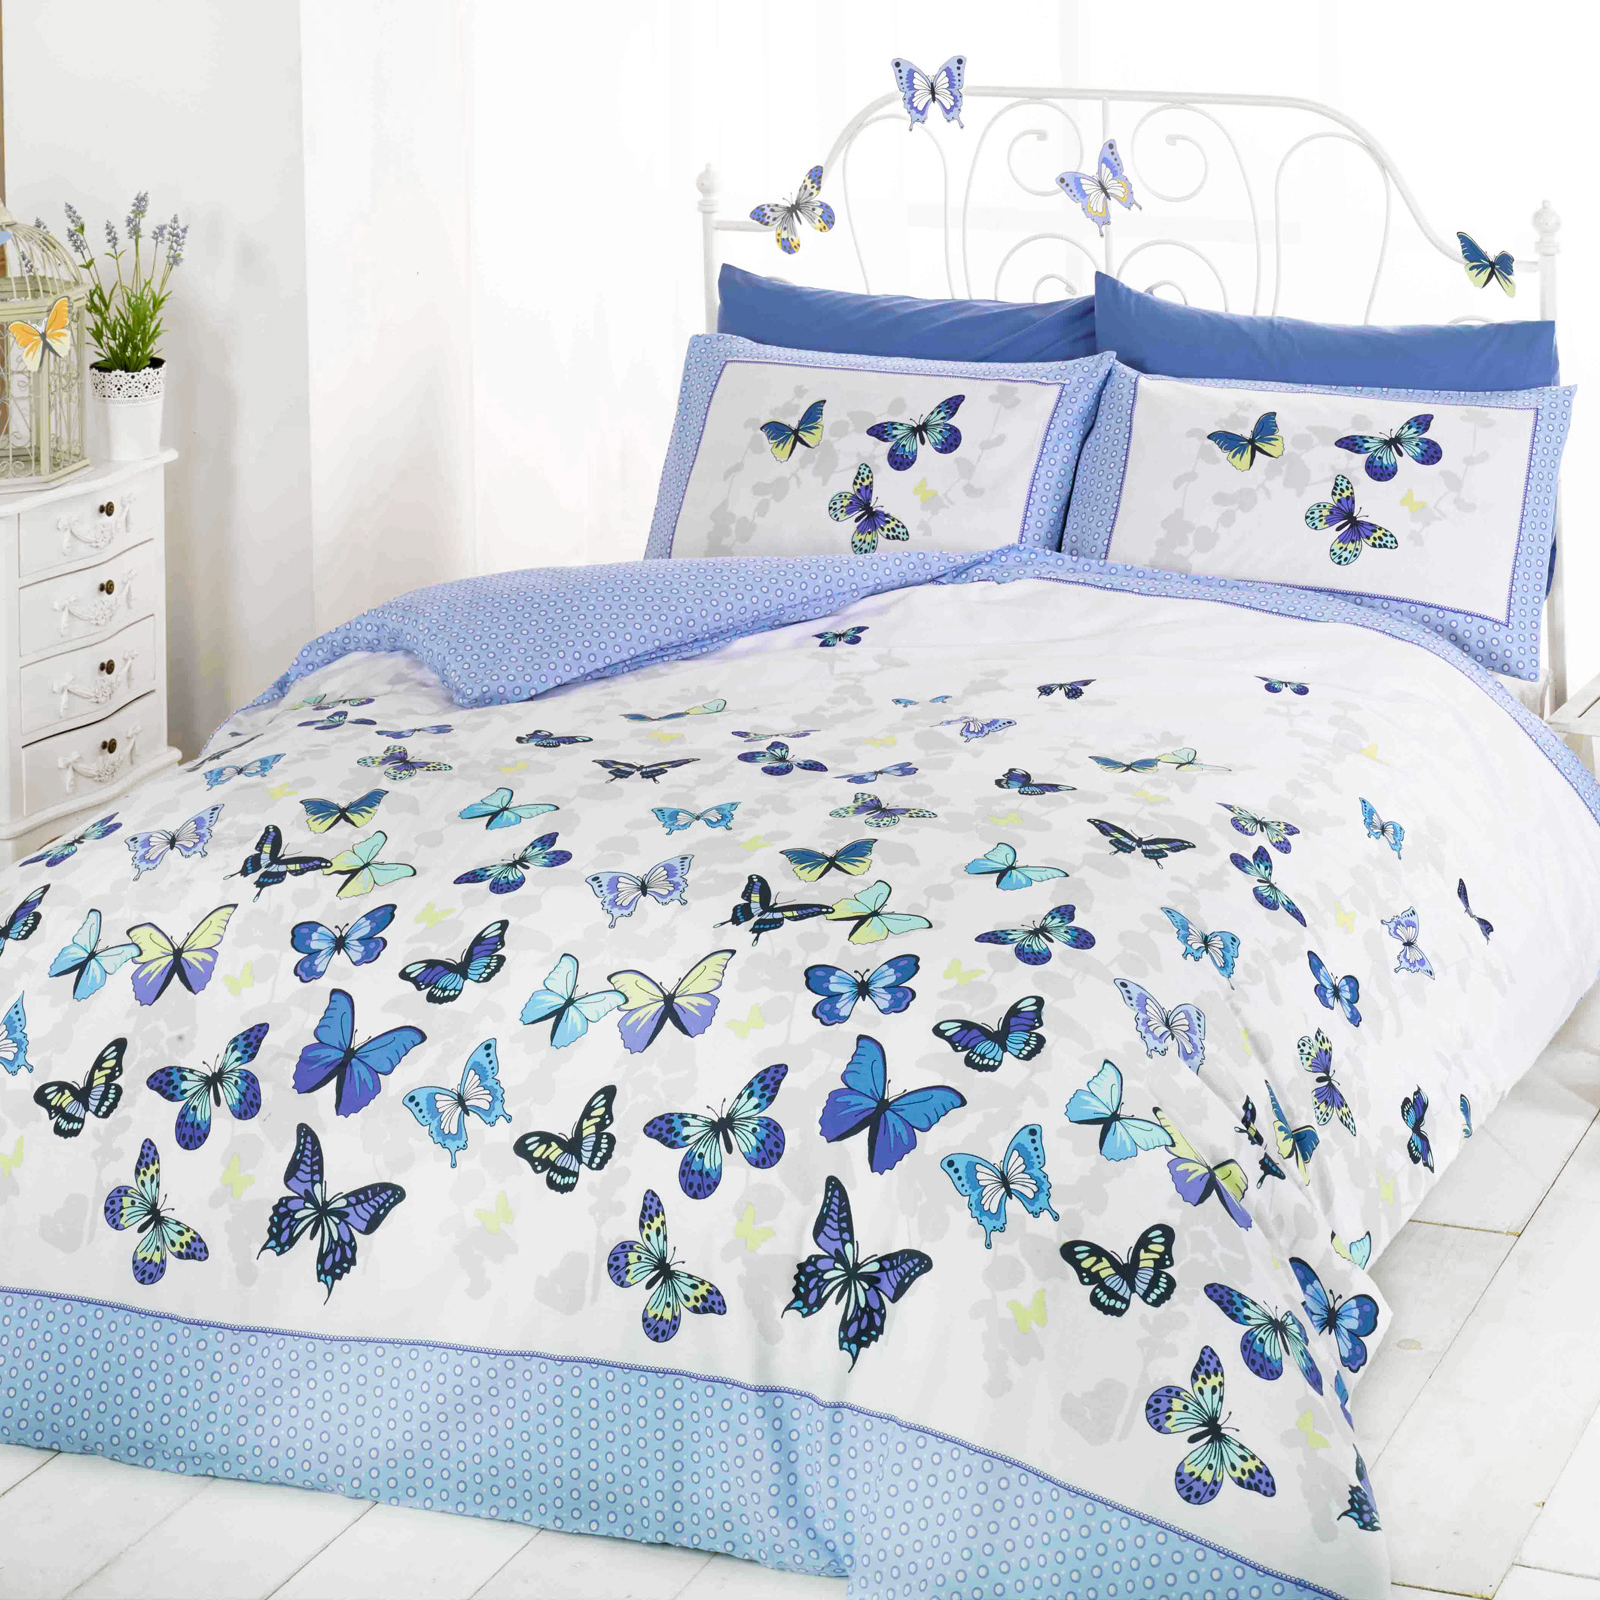 Girls Butterfly Bedding Reversible Polka Dot Cotton Rich